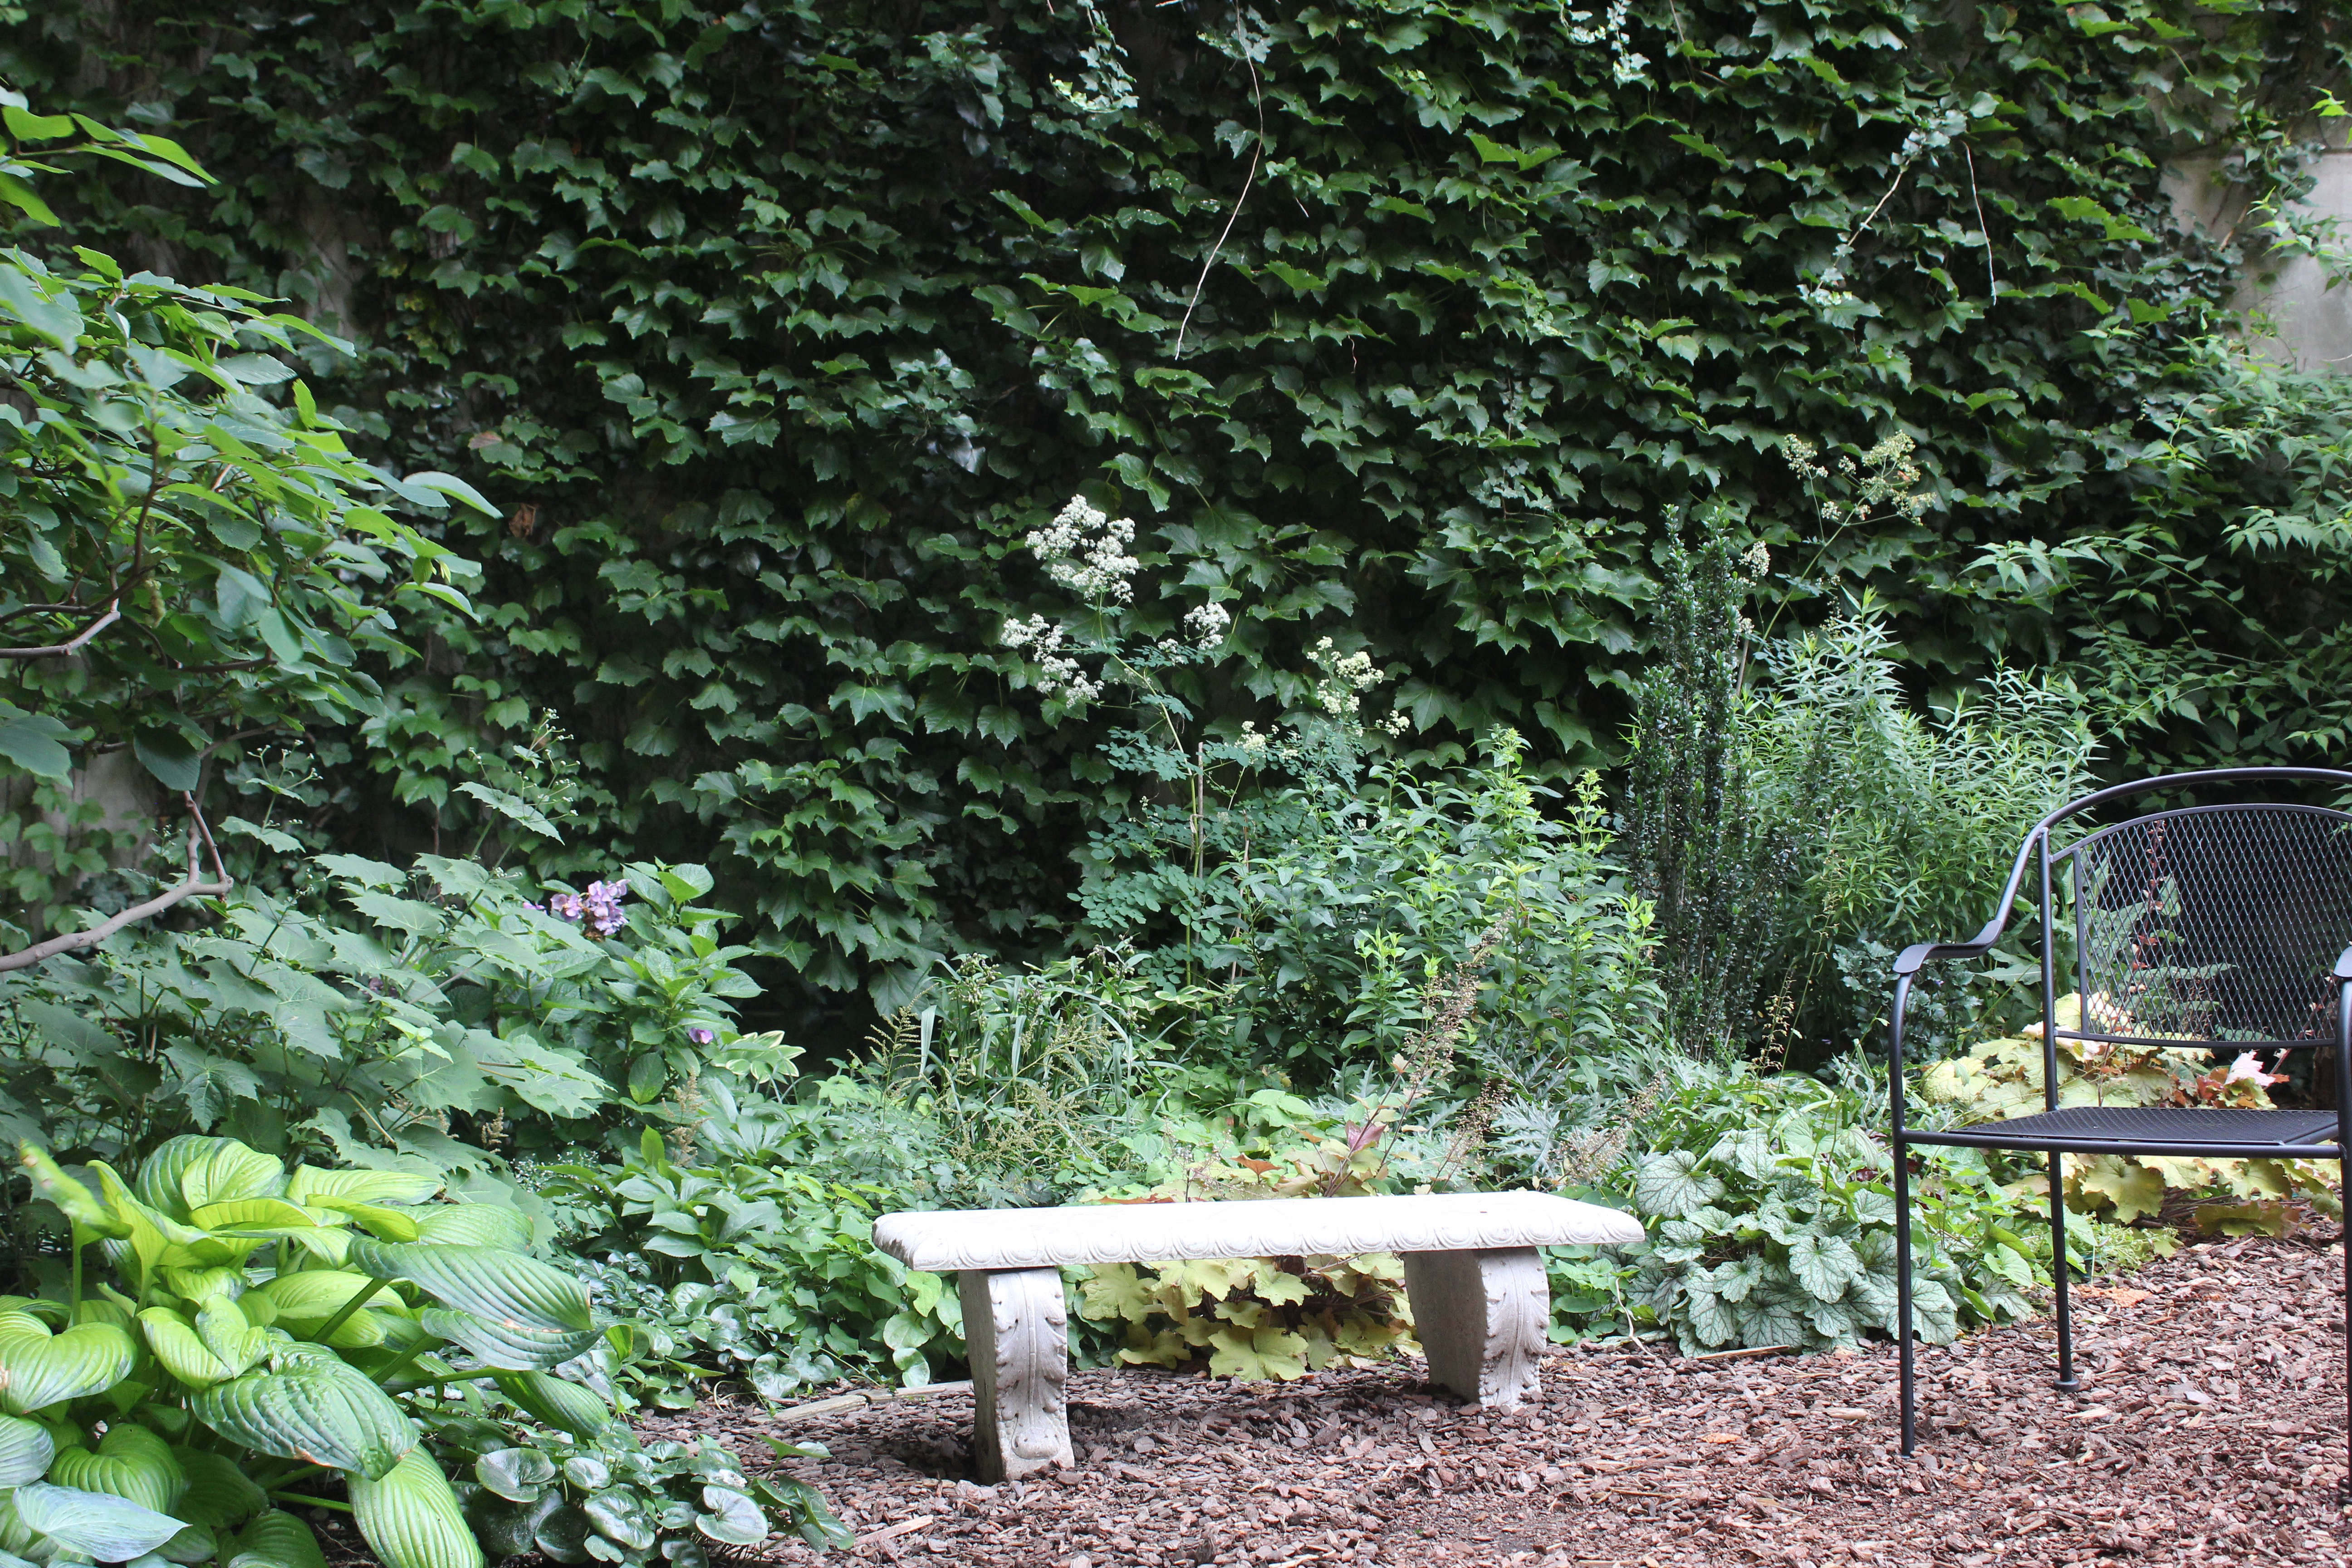 Set against a backdrop of English ivy, a plot in the garden's shady southwest corner features astilbe, hydrangeas, hostas, European wild ginger (Asarum europaeum), and a mix of Heucheras, or coral bells.